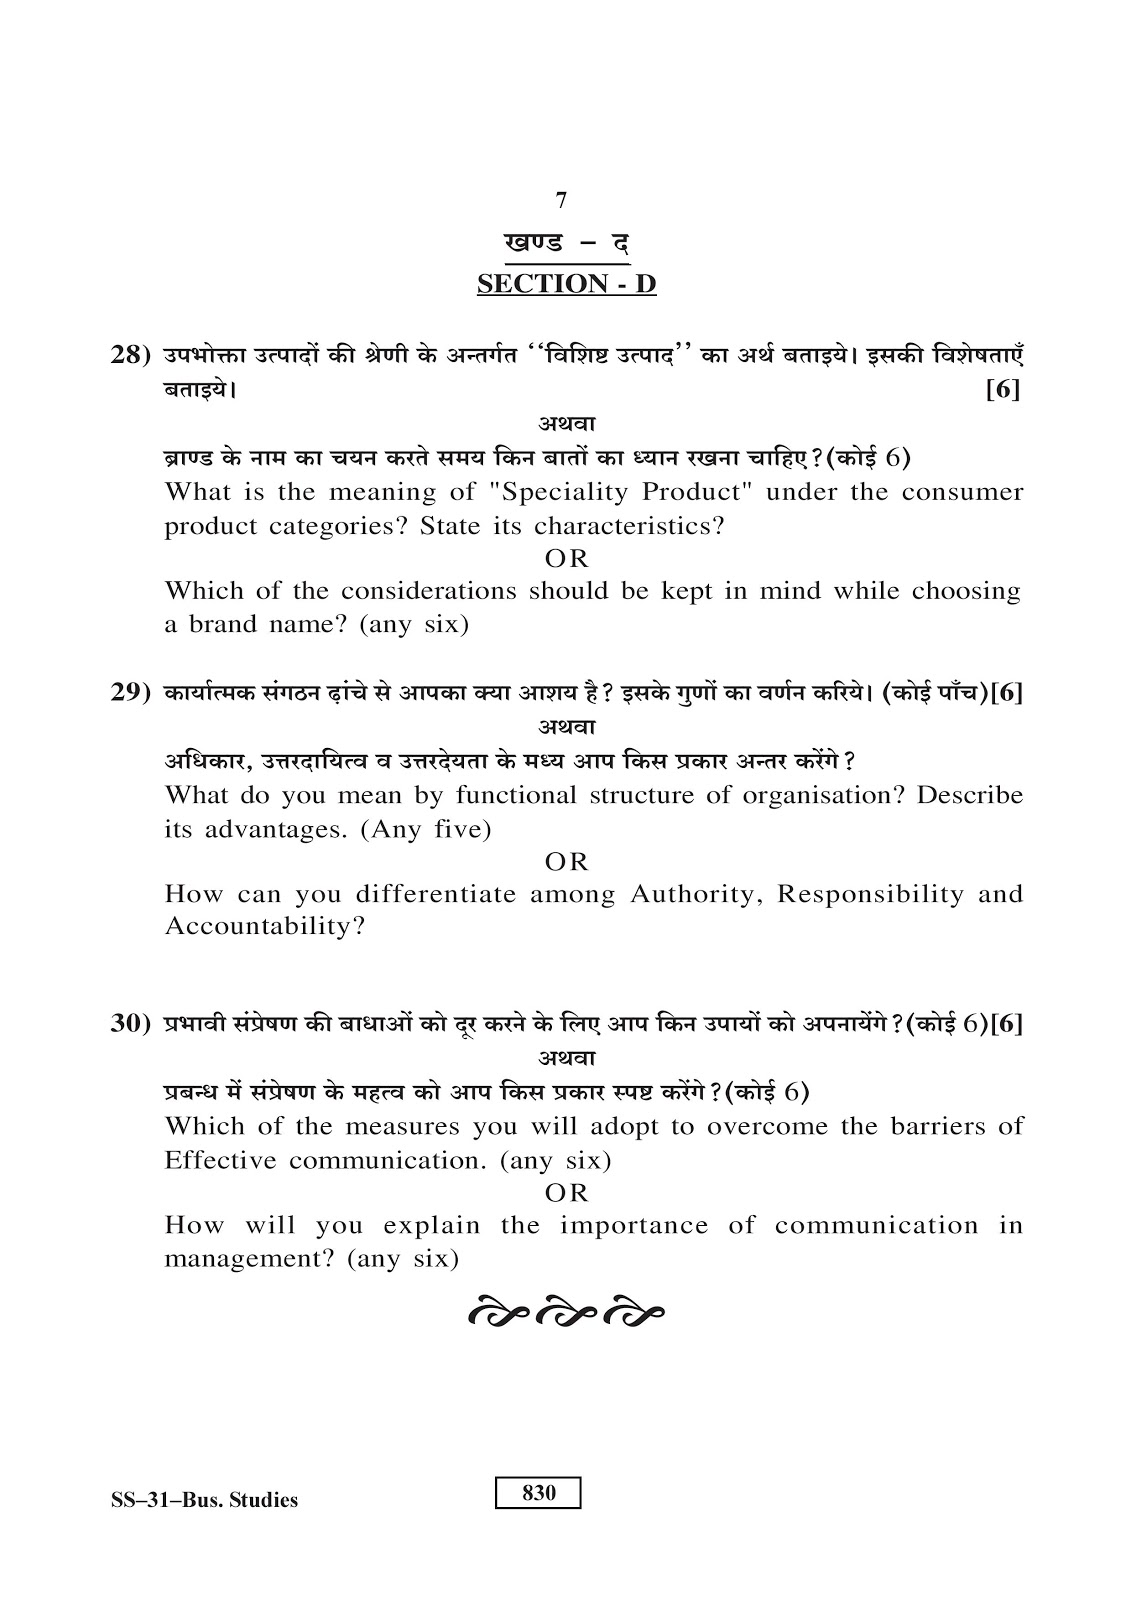 RBSE class 12th 2017 Business Studies question paper